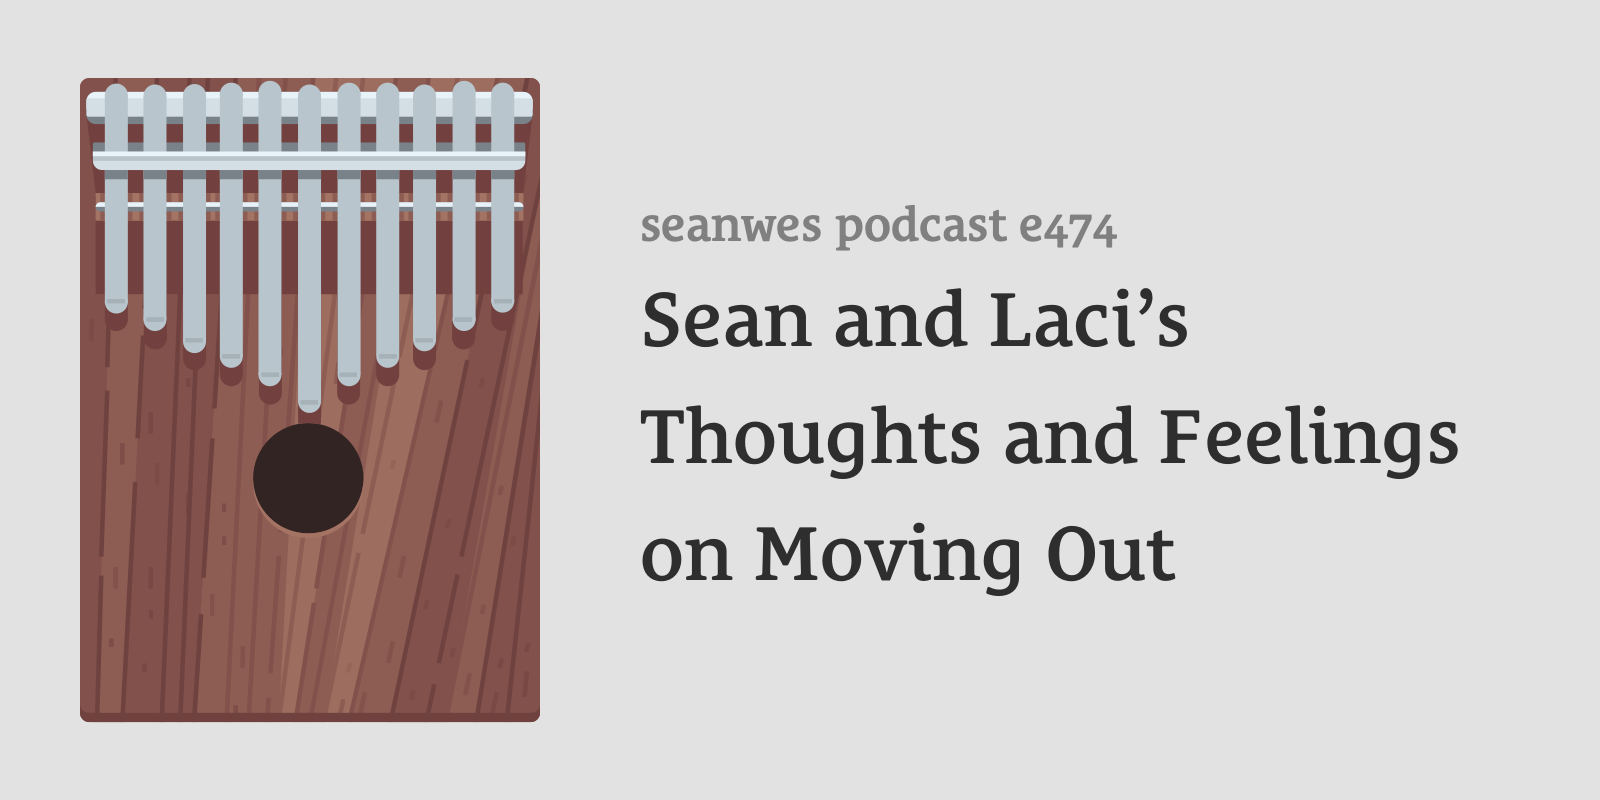 Sabbatical Episode: Sean and Laci's Thoughts and Feelings on Moving Out